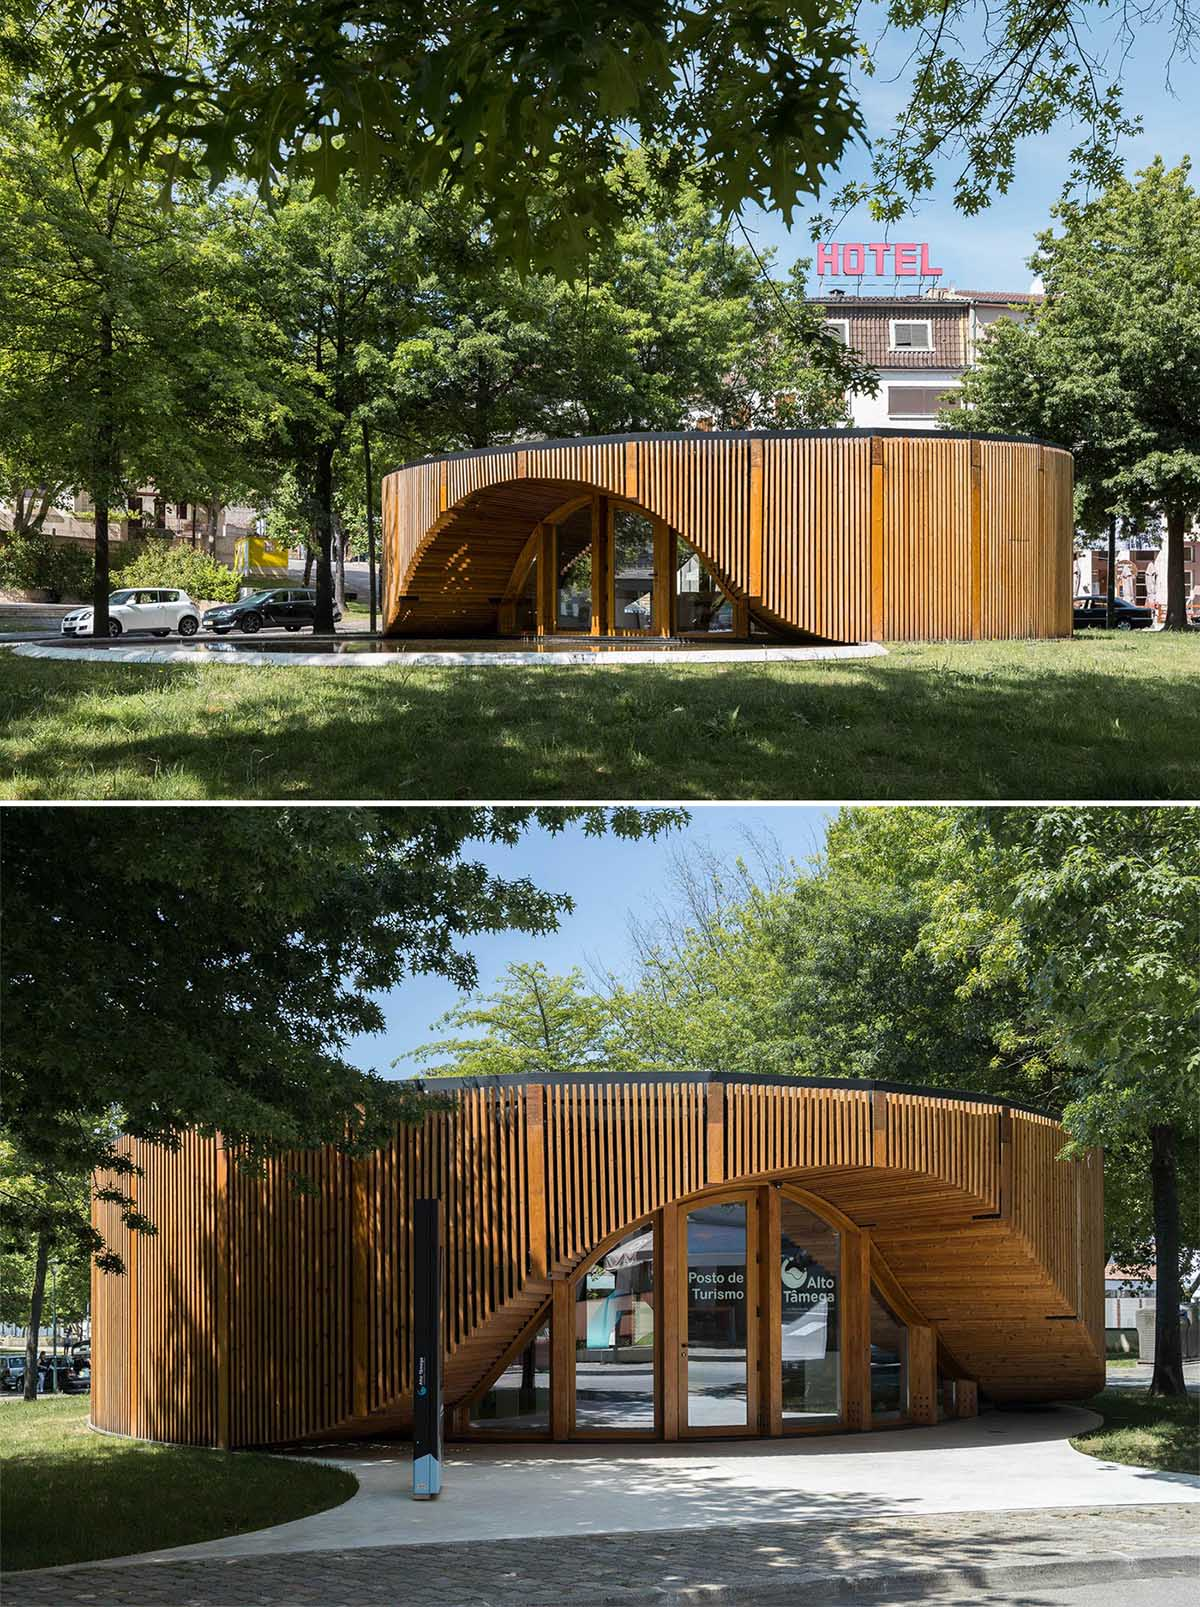 A small modern building has a circular design that's built using a structural base of timber pillars and beams over a concrete slab.